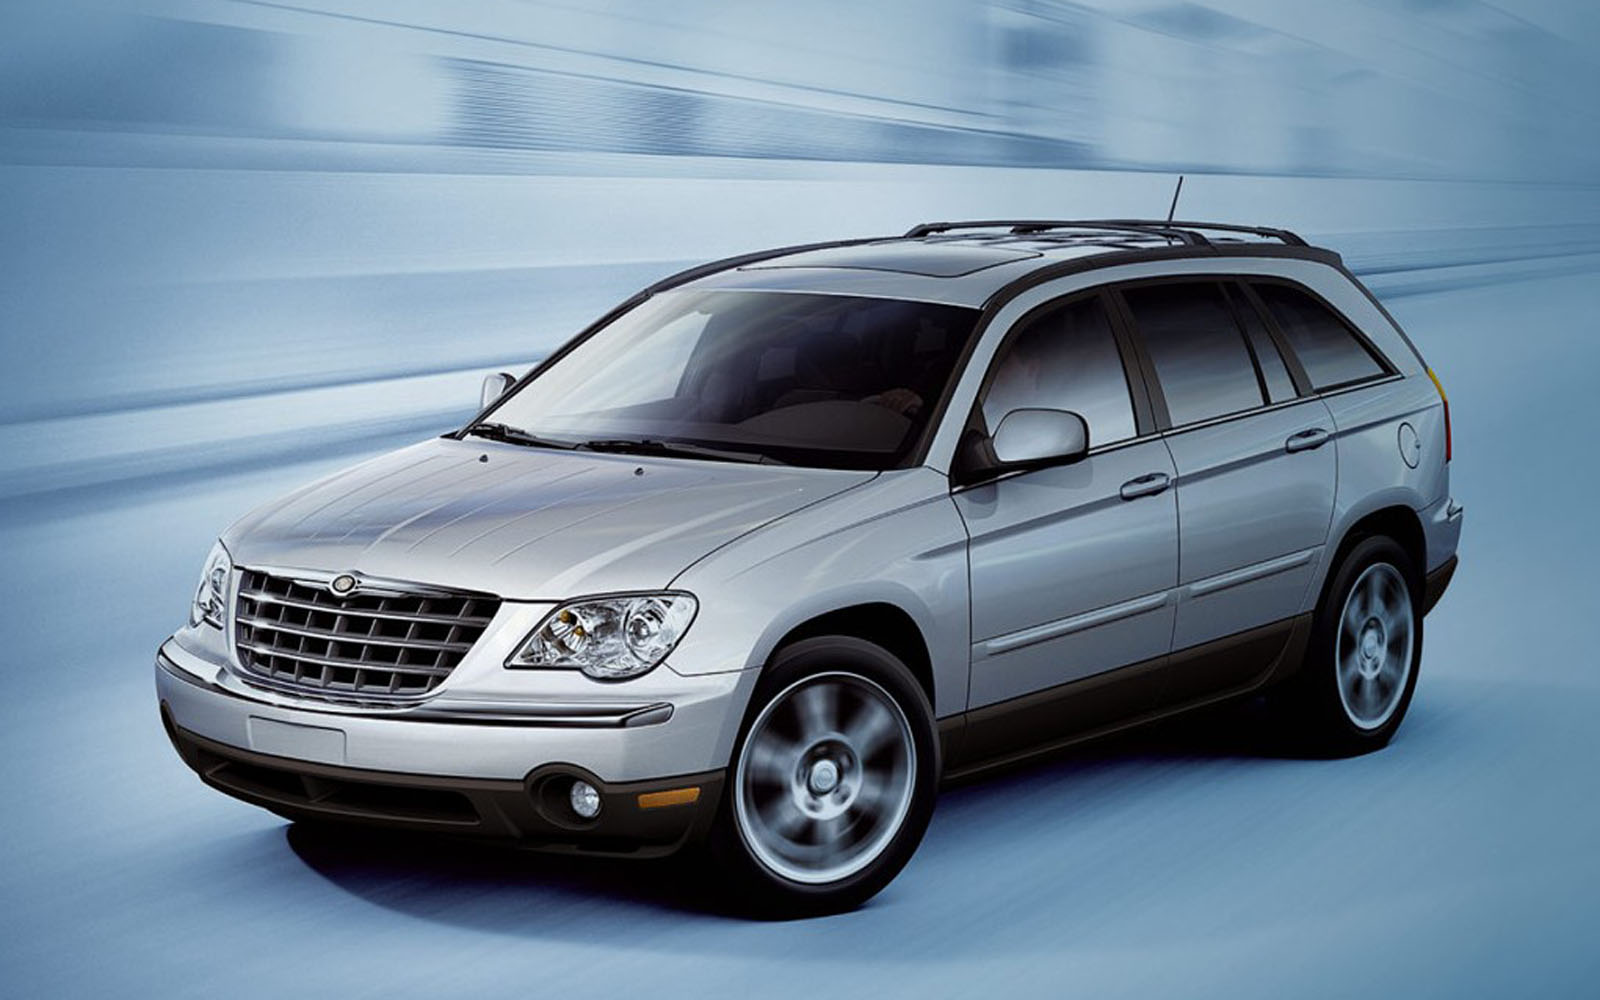 Chrysler Pacifica Cars Wallpapers